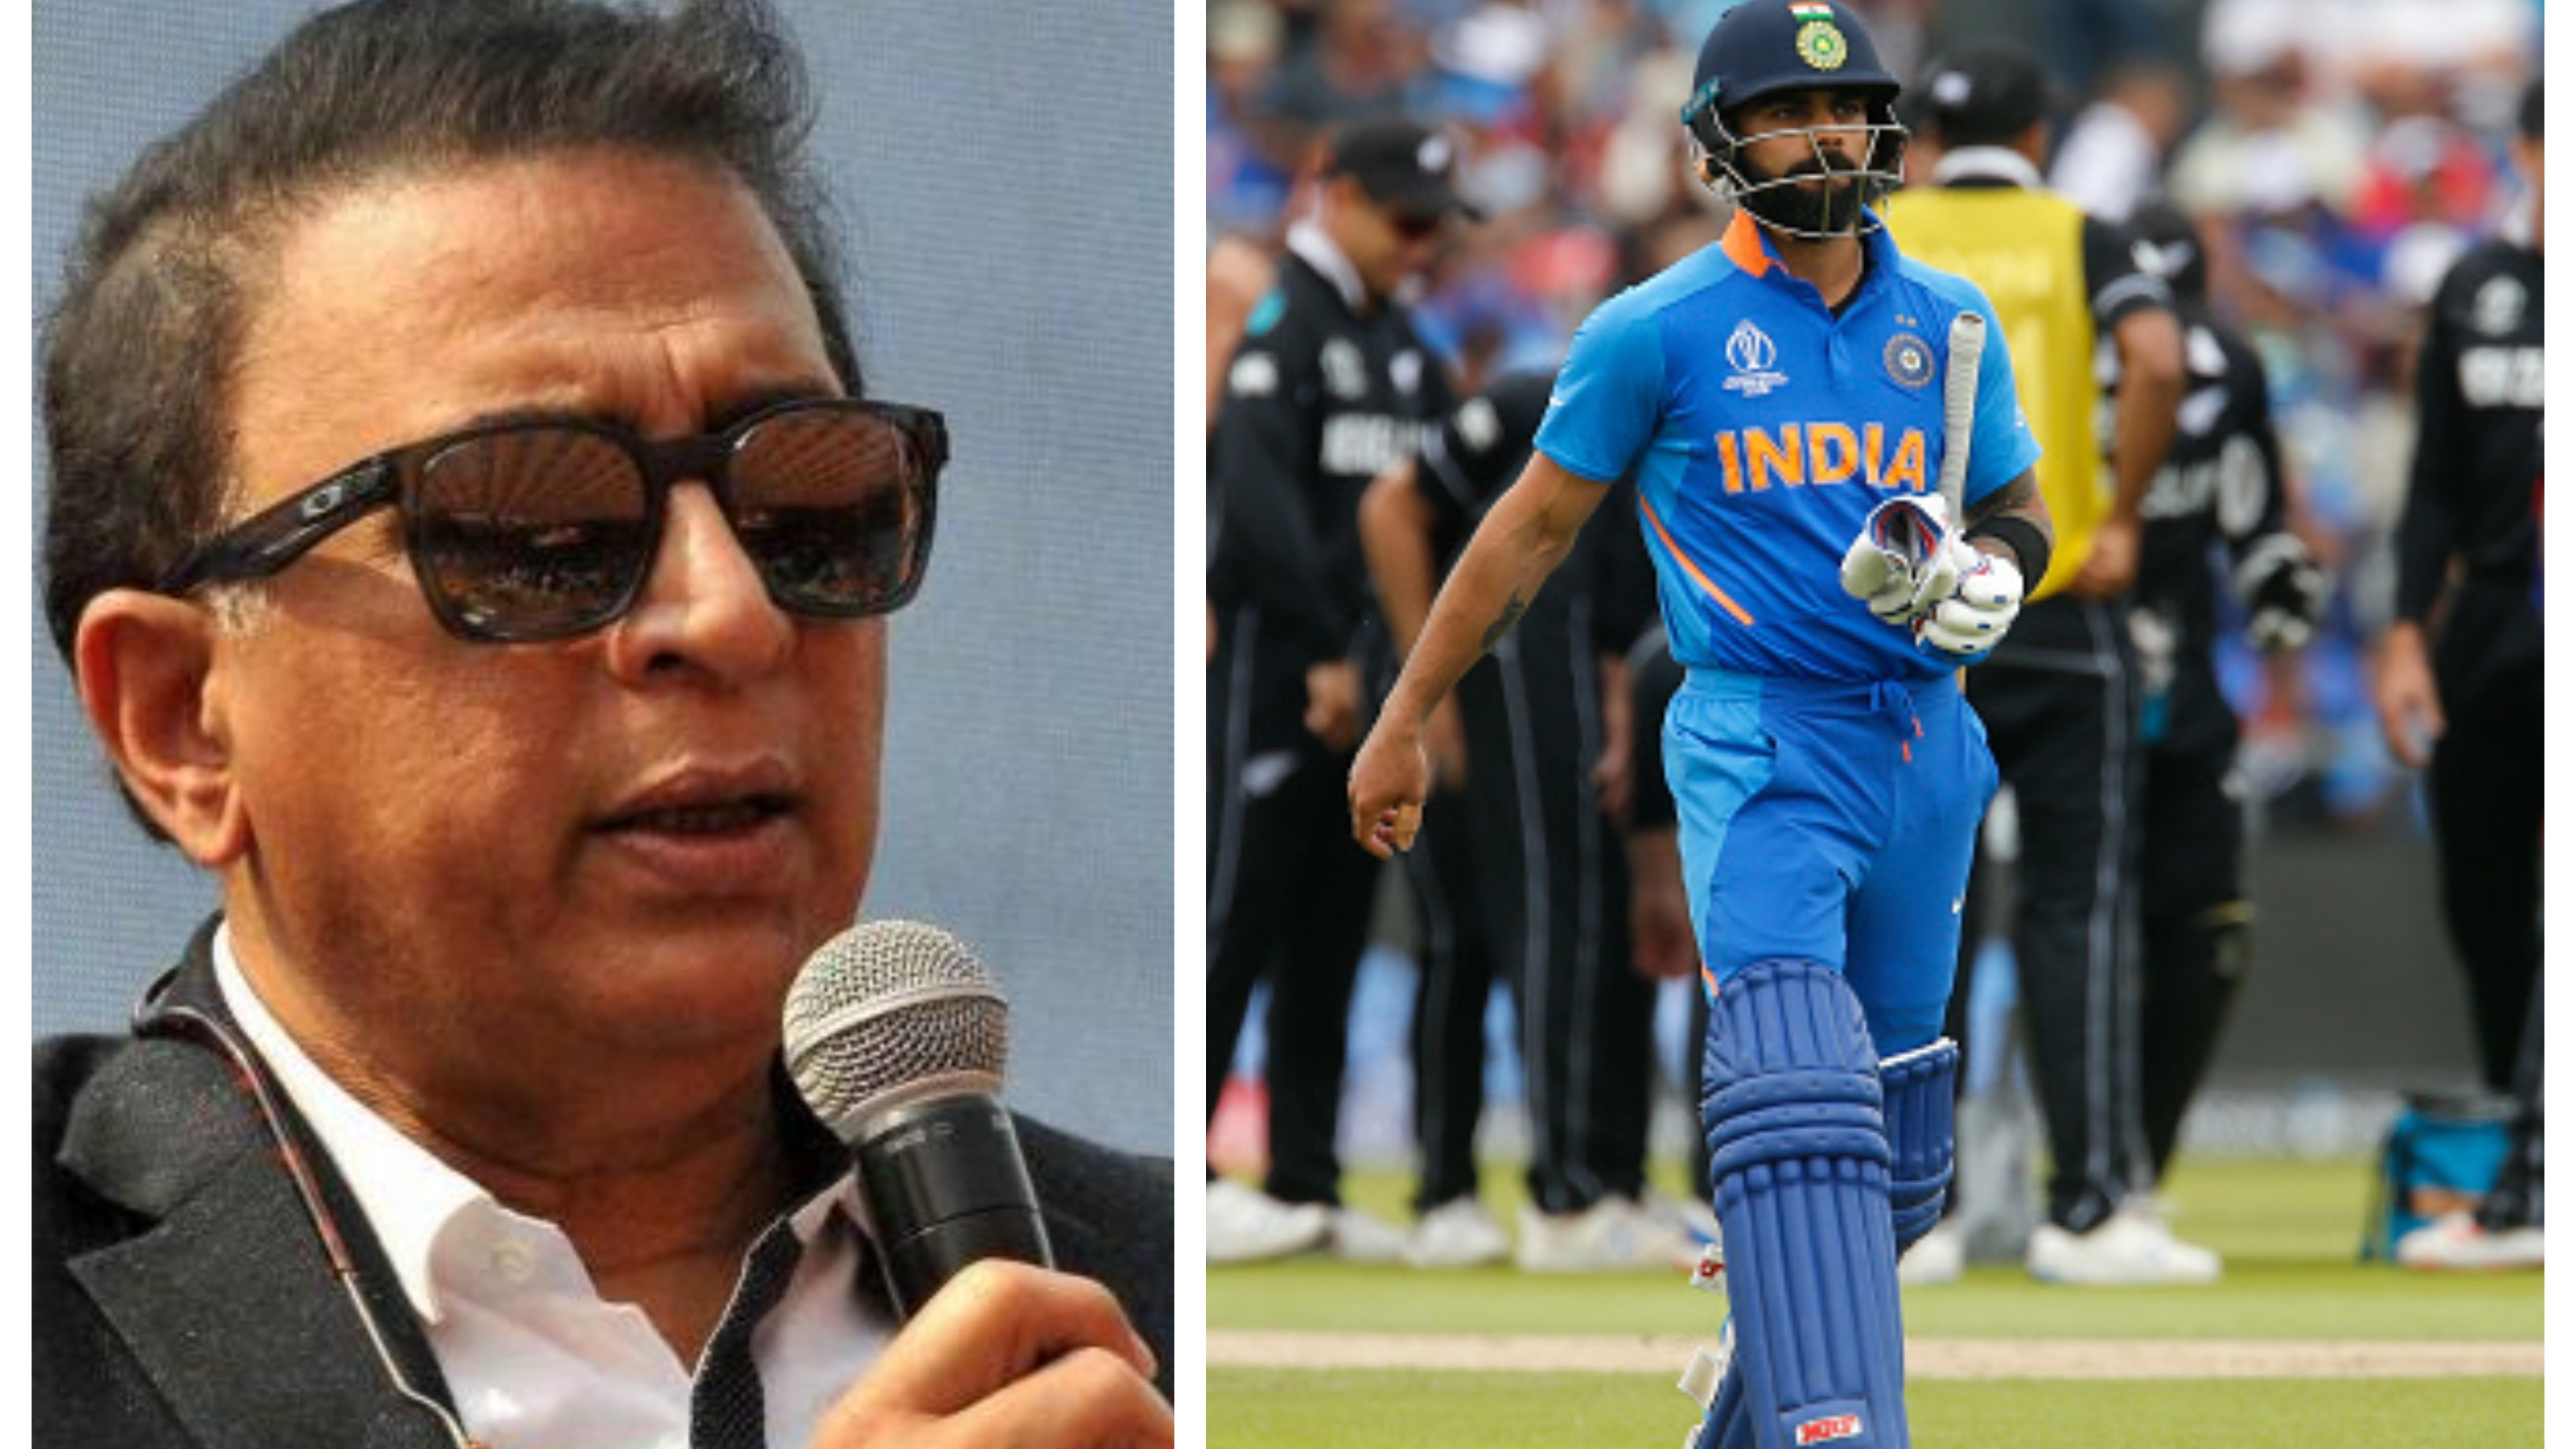 India made a mistake by not having proper number 4 batsman for World Cup, says India legend Sunil Gavaskar